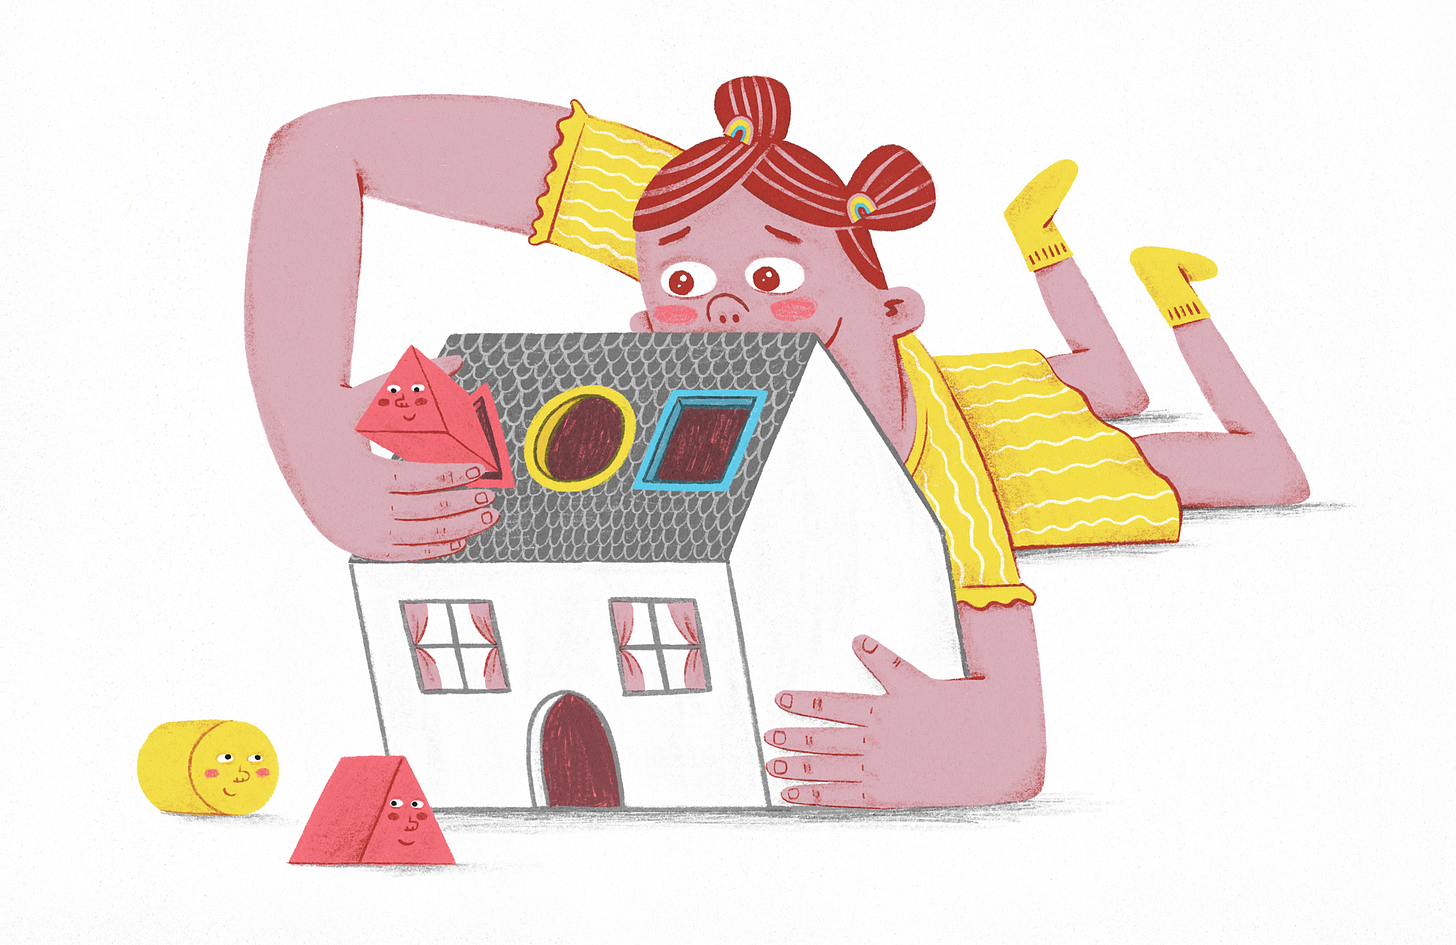 A young girl plays with a toy house, trying to fit shapes inside it. Two pink triangle shapes are in the picture, one in her hand, and one on the floor.